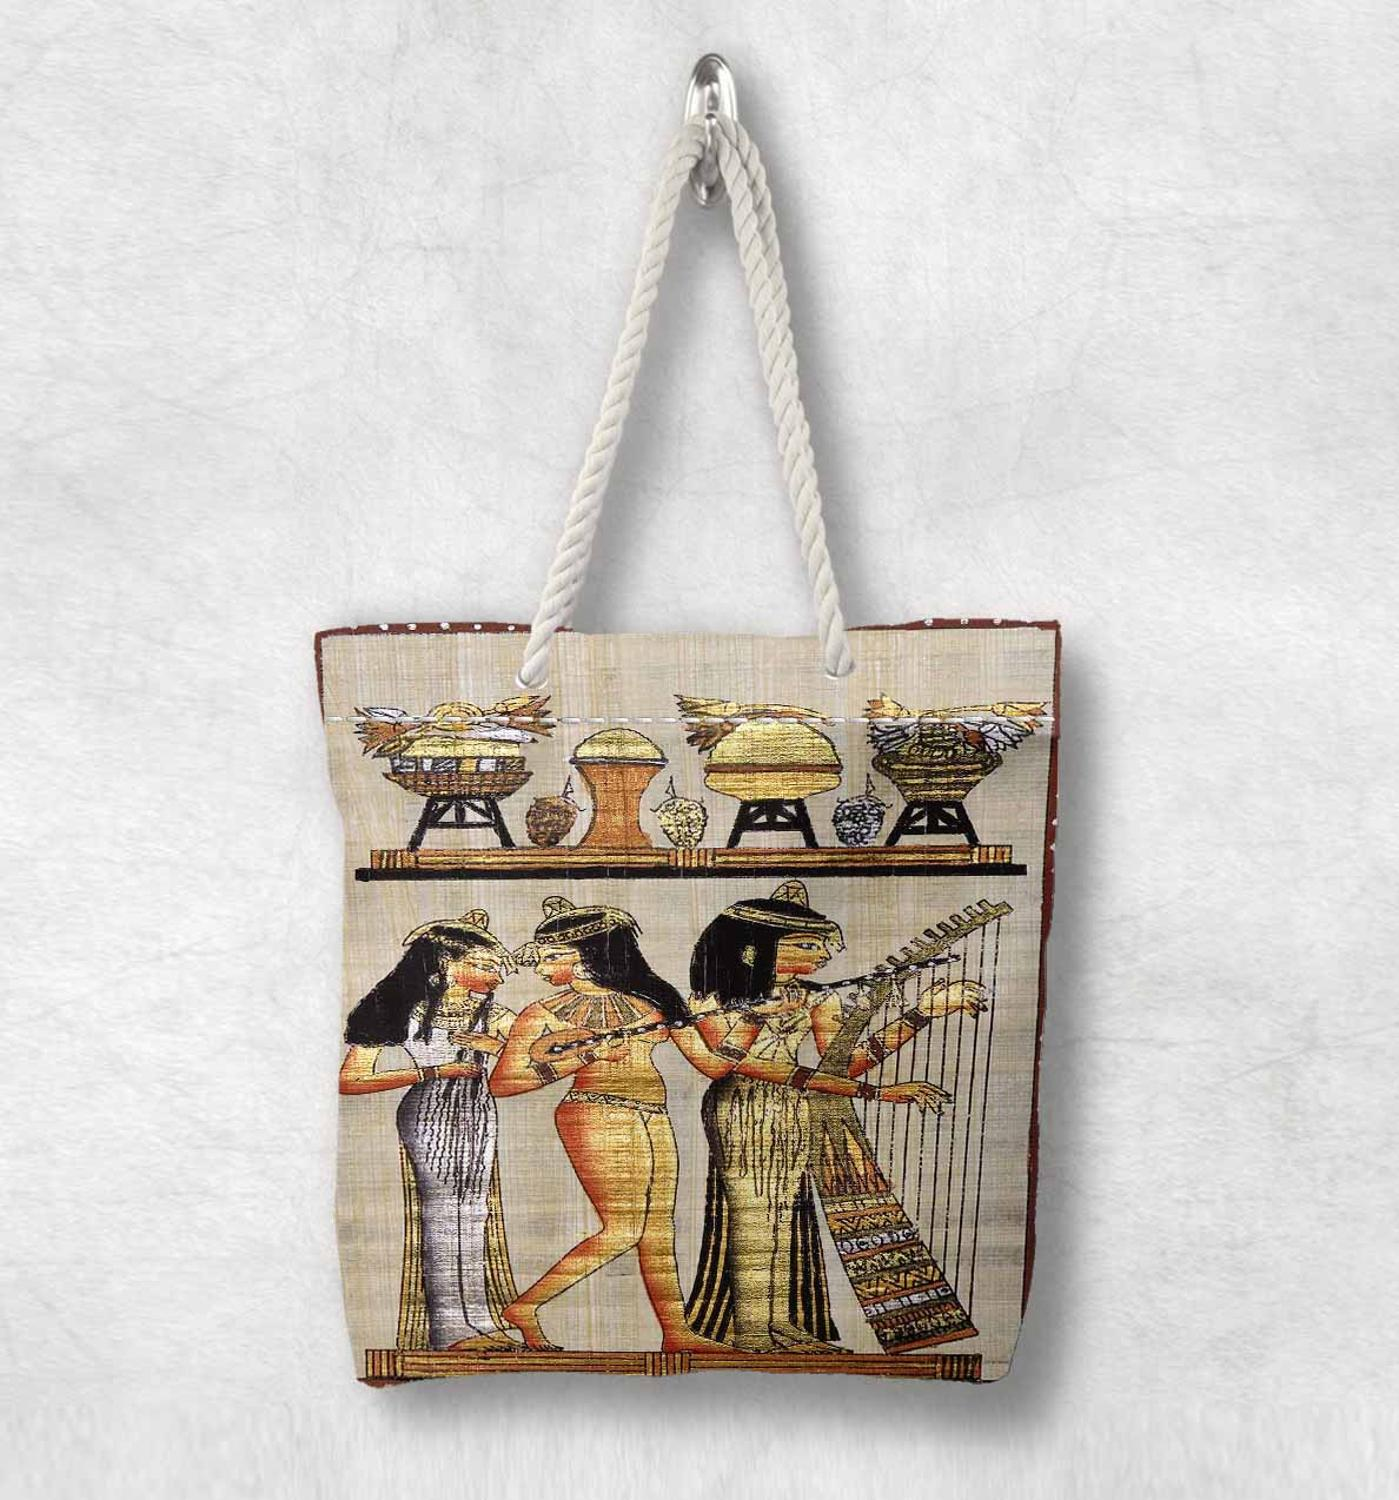 Else Yellow Persian Antique Egypt Design New Fashion White Rope Handle Canvas Bag Cotton Canvas Zippered Tote Bag Shoulder Bag